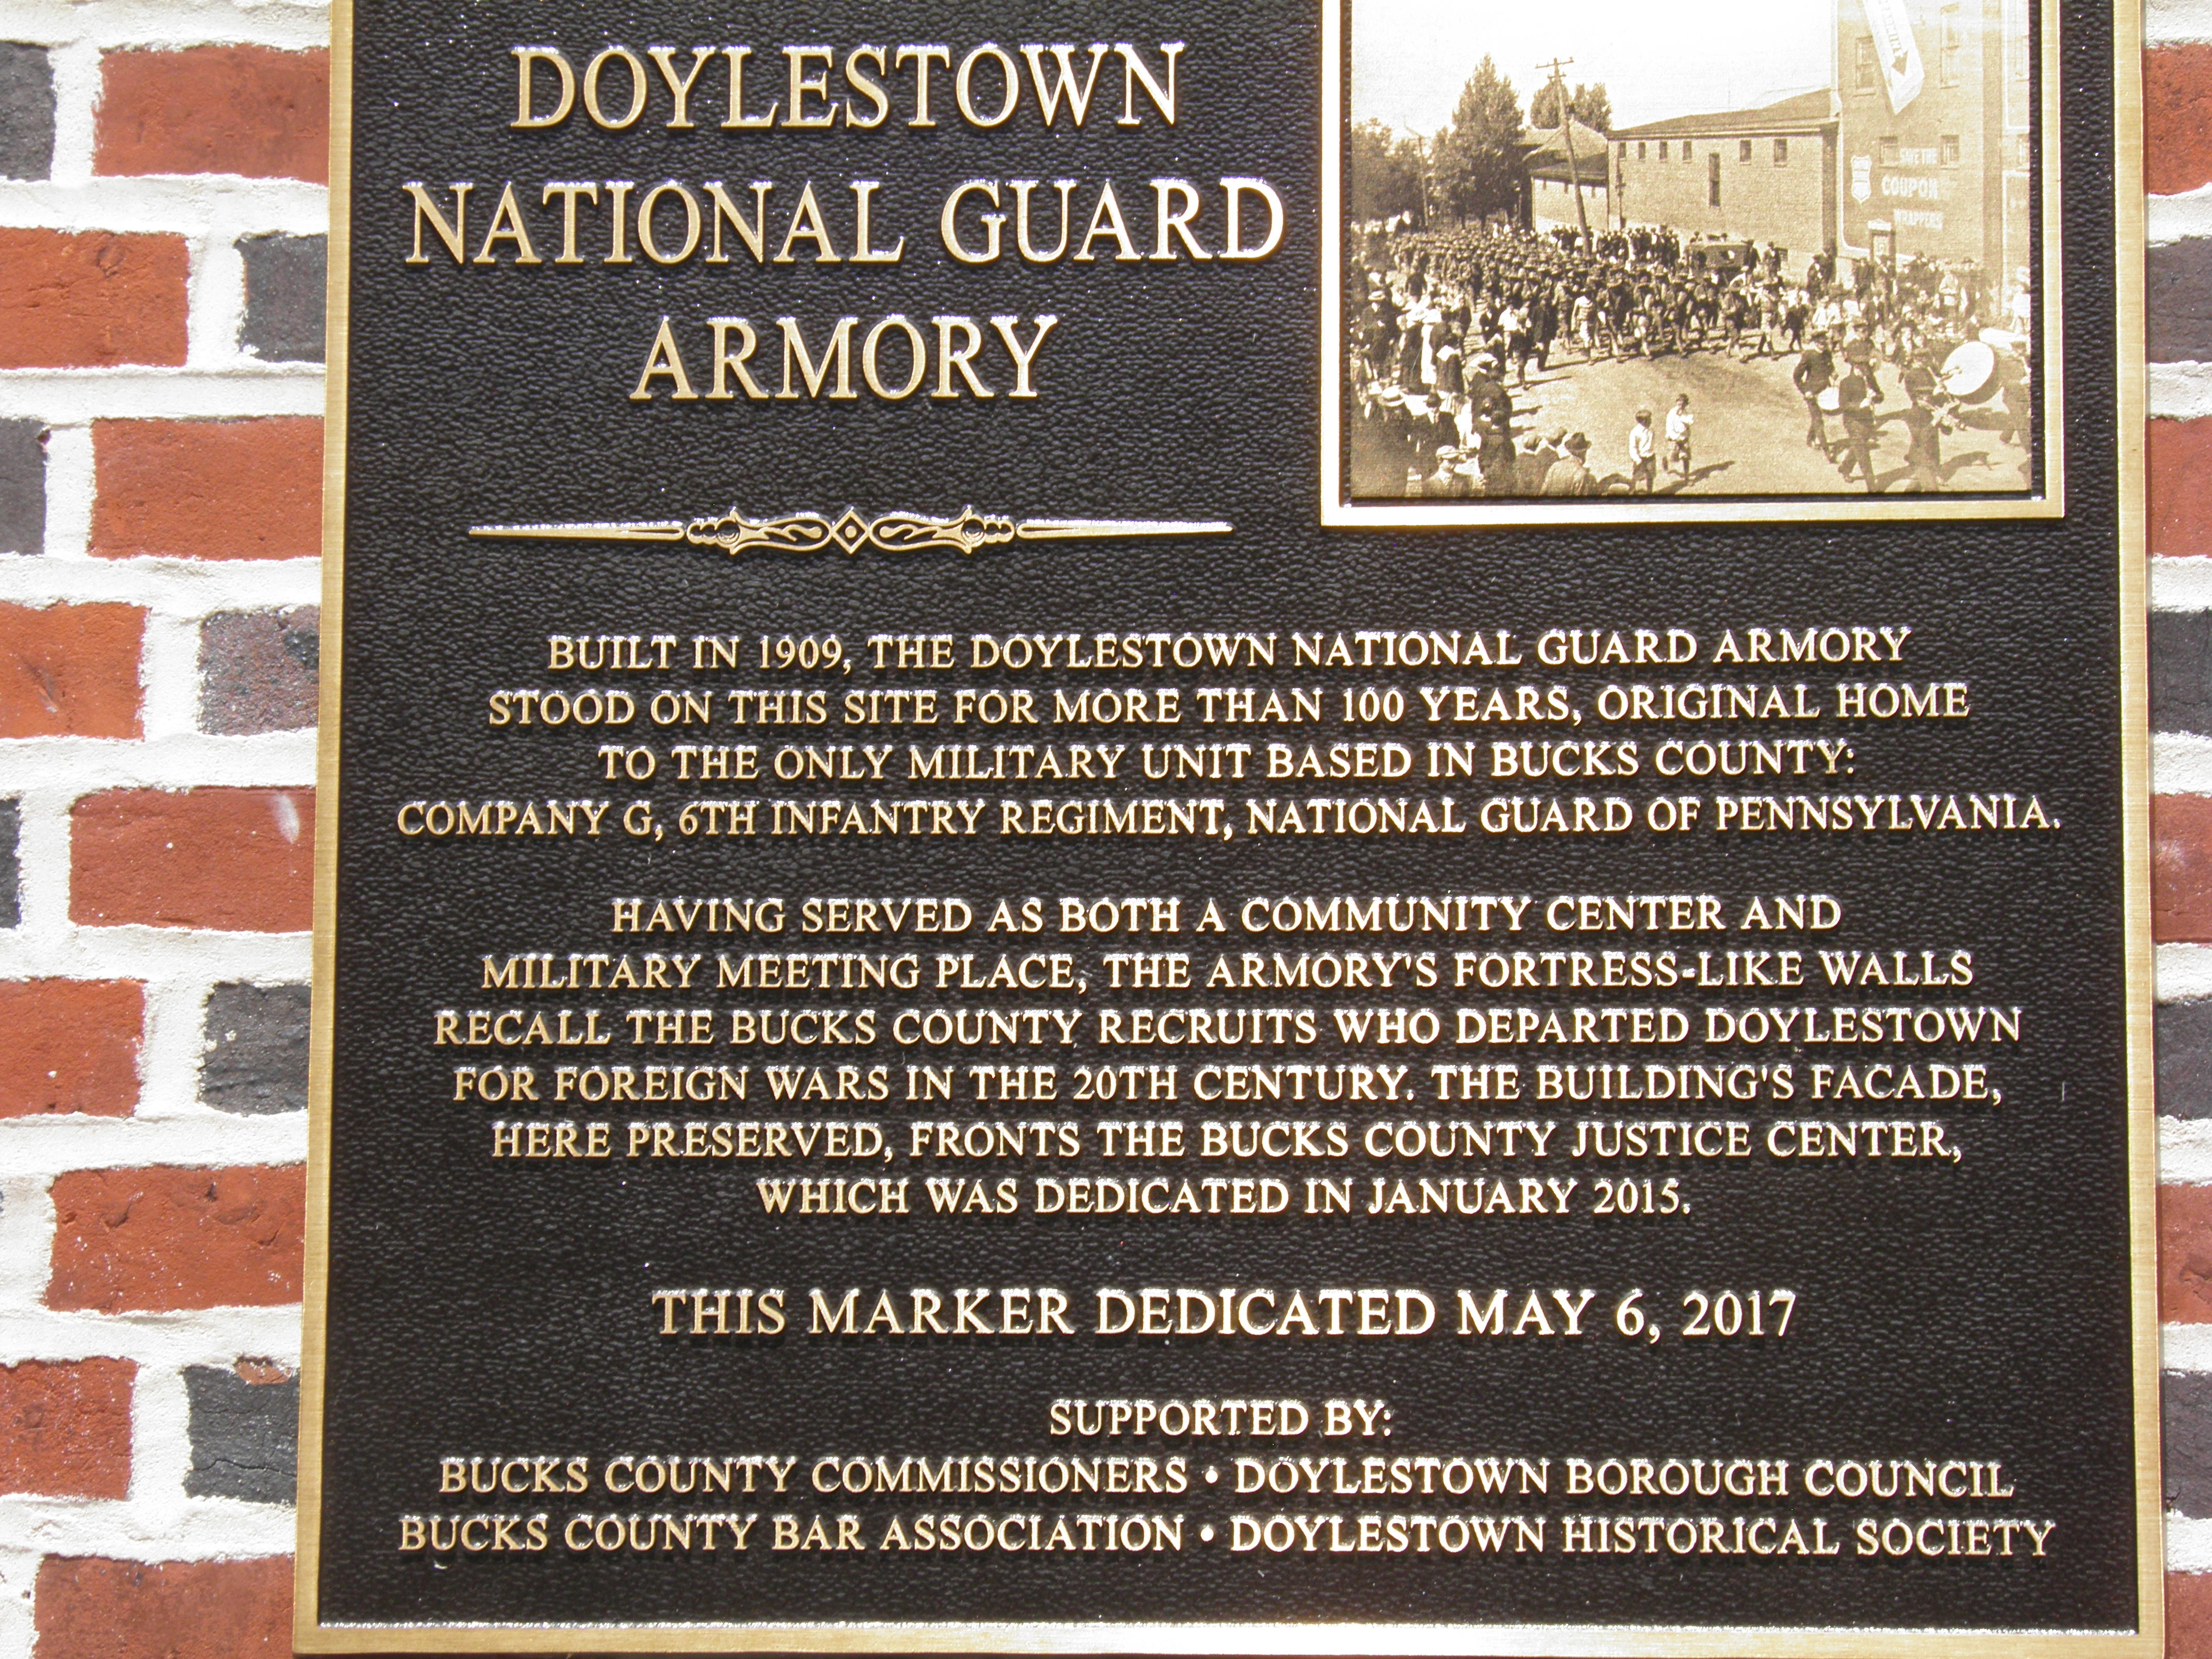 Doylestown National Guard Armory Marker